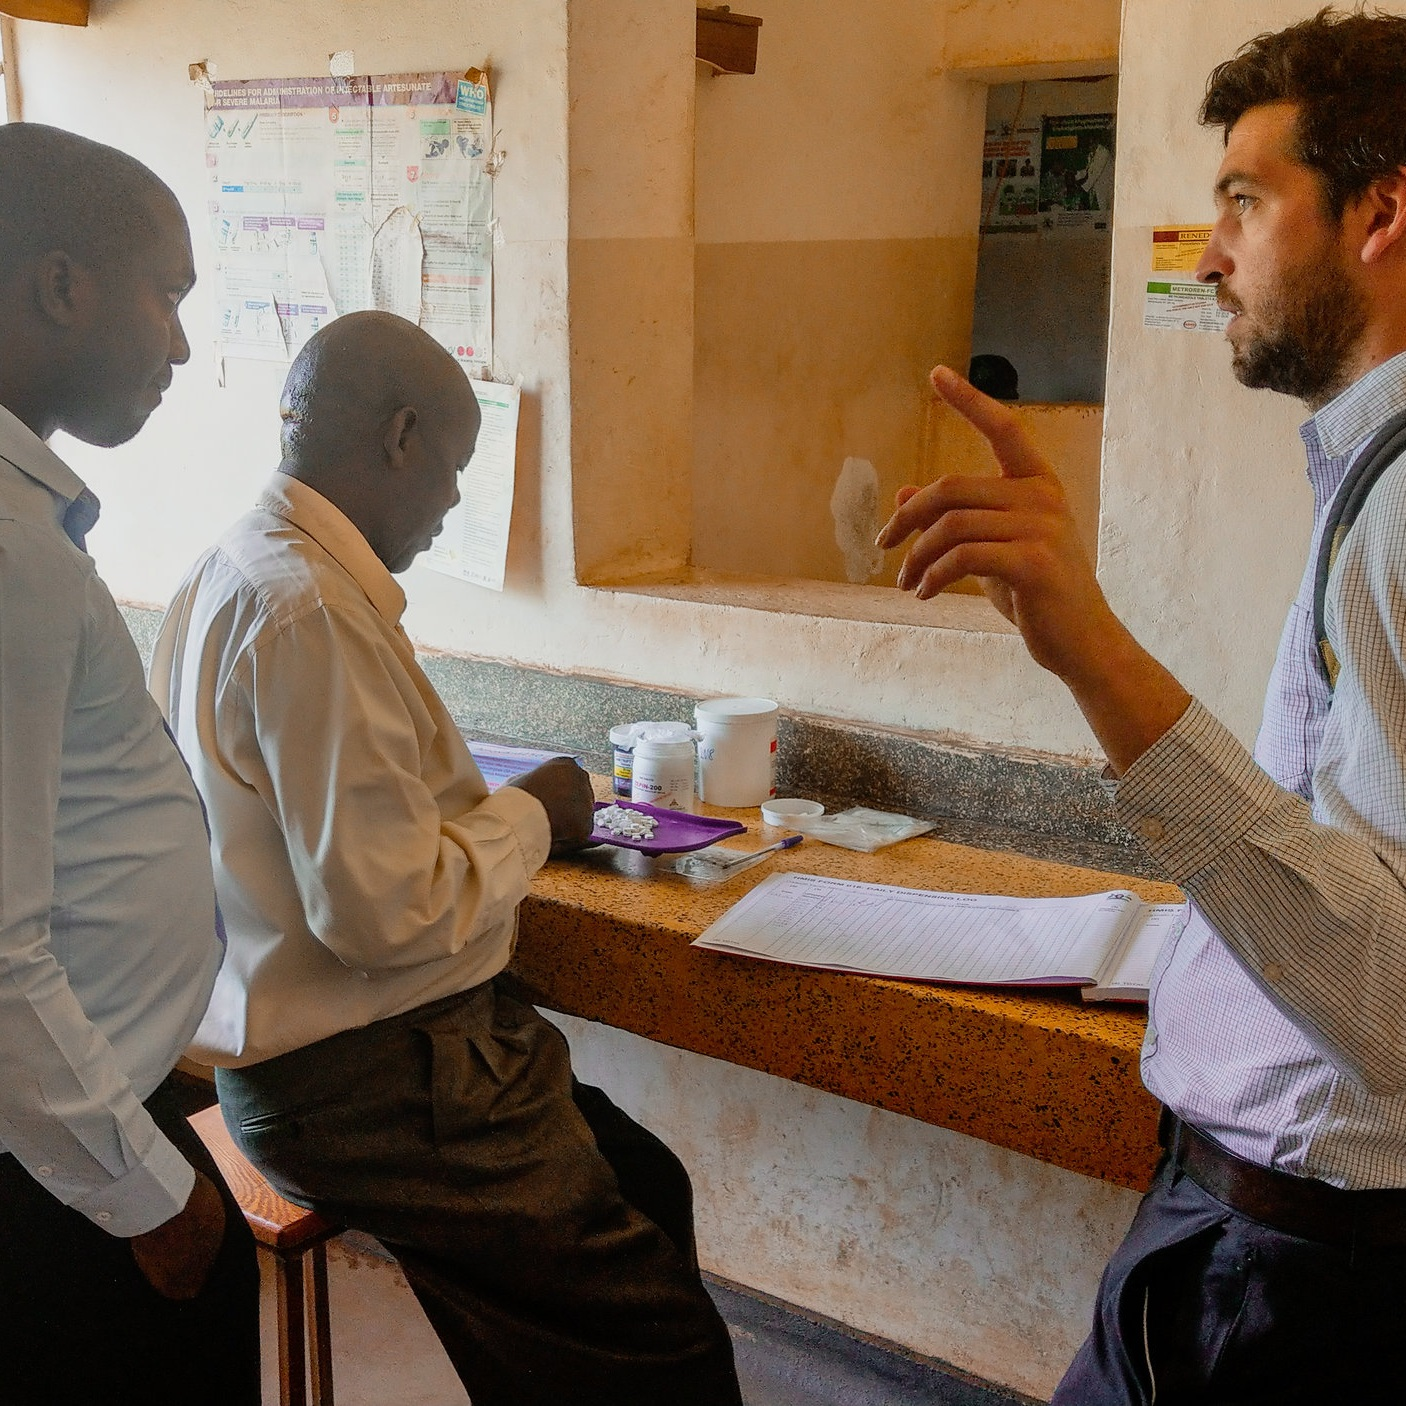 At a Health Centre Level IV, Nico talks with Health Providers about ways to improve and digitize the dispensing of medicines.